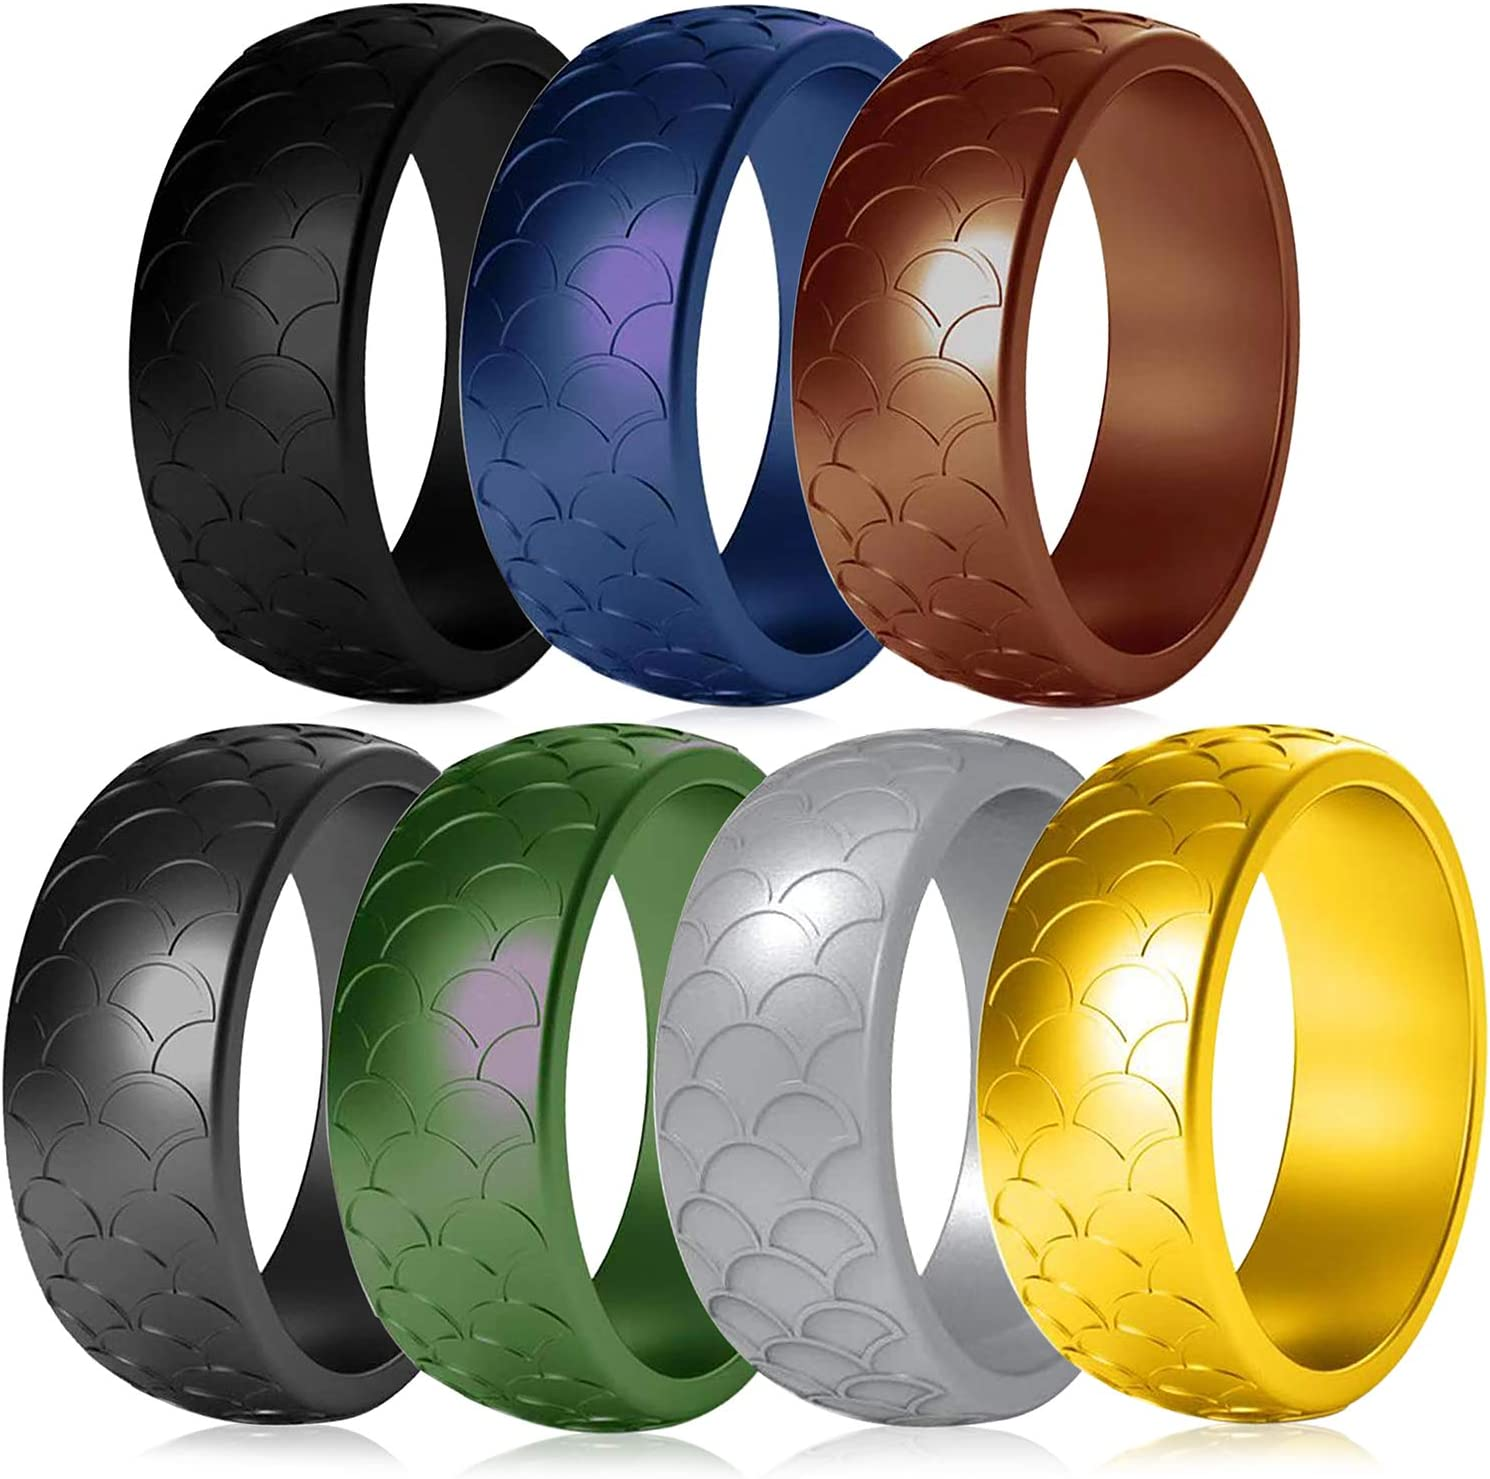 7Pack Rubber Wedding Bands ENlink Silicone Wedding Rings for Men Fish-Scale Pattern Rubber Rings for Men